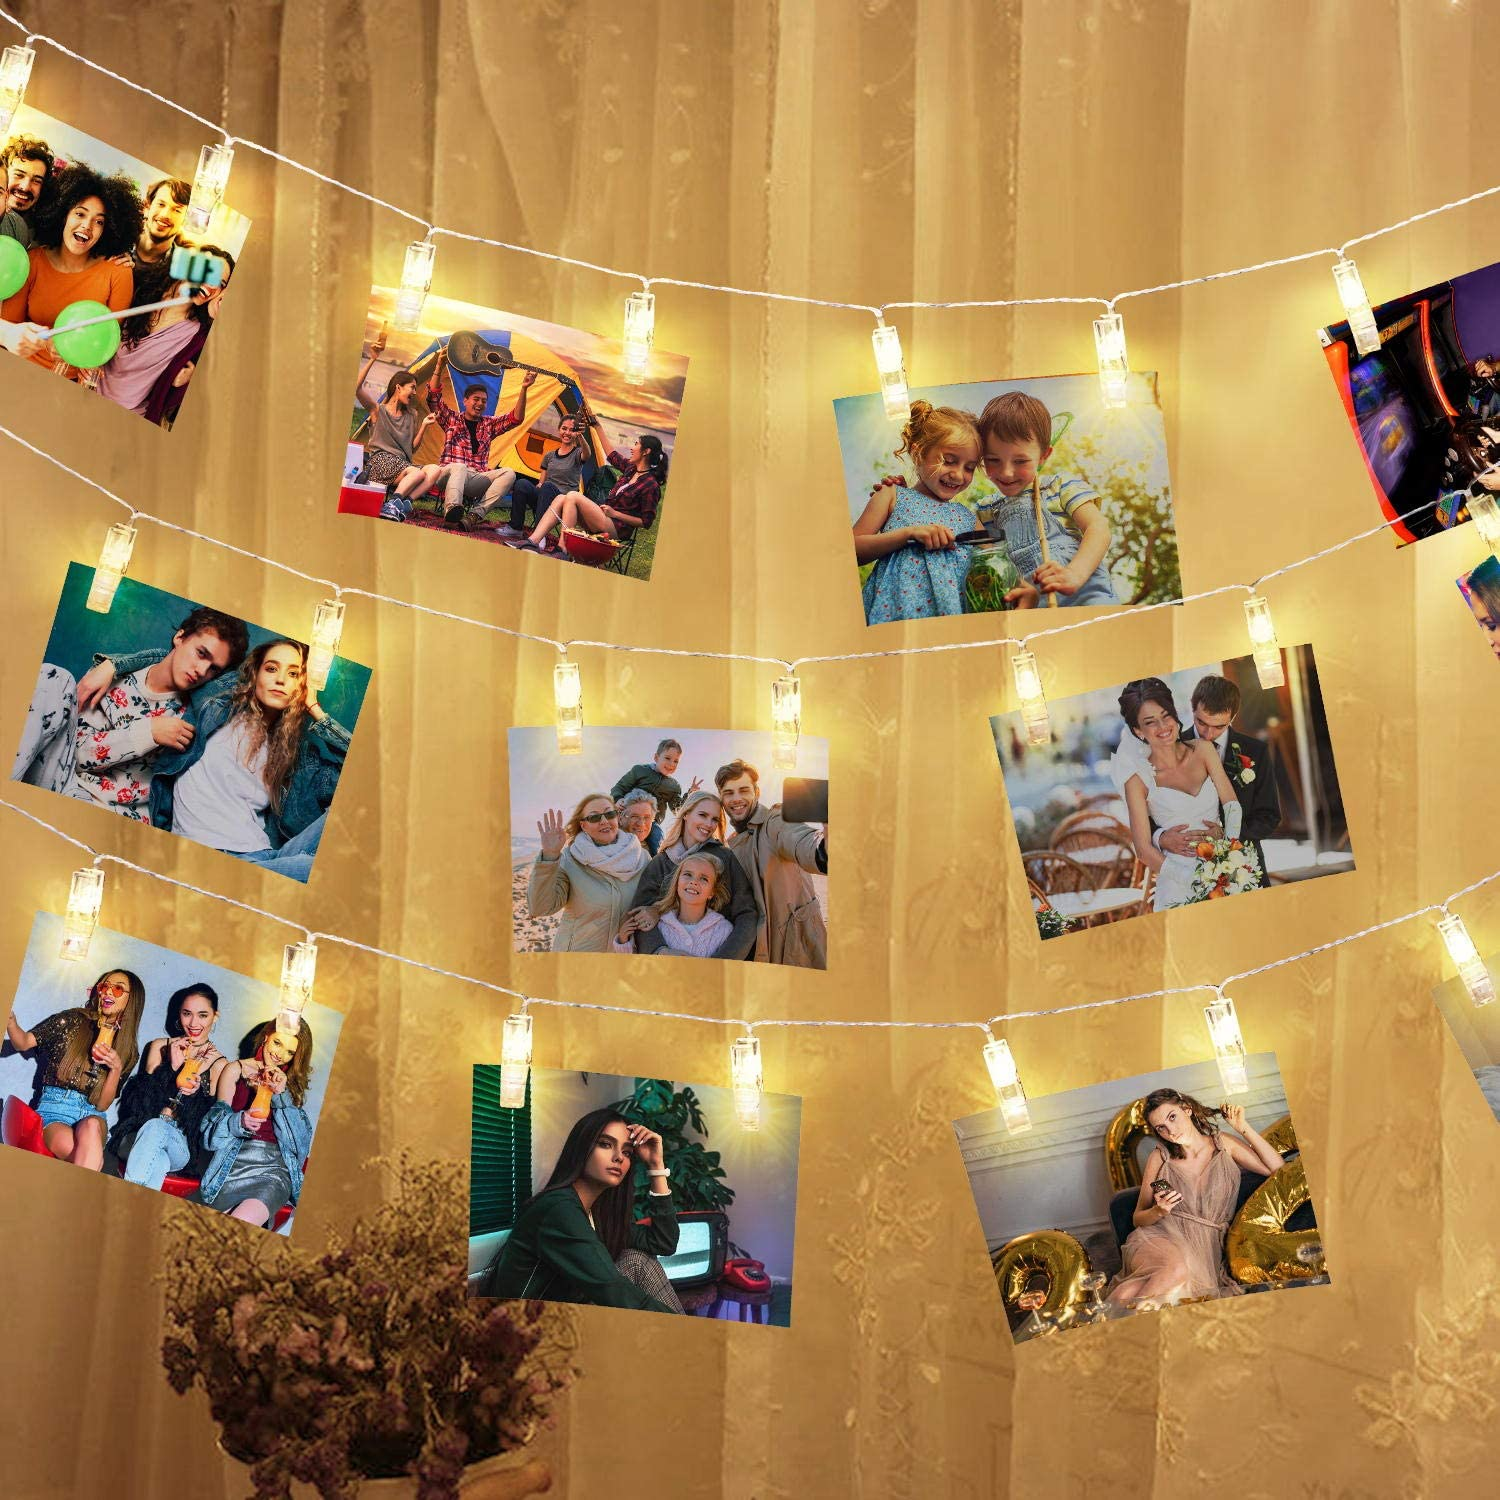 LED Photo Clips String Lights 20ft 40 LED Photo Clips Battery Powered Starry Fairy Lights Twinkle Lights for Hanging Pictures, Cards and Artwork Wedding Party Christmas Halloween Thanksgiving Decor